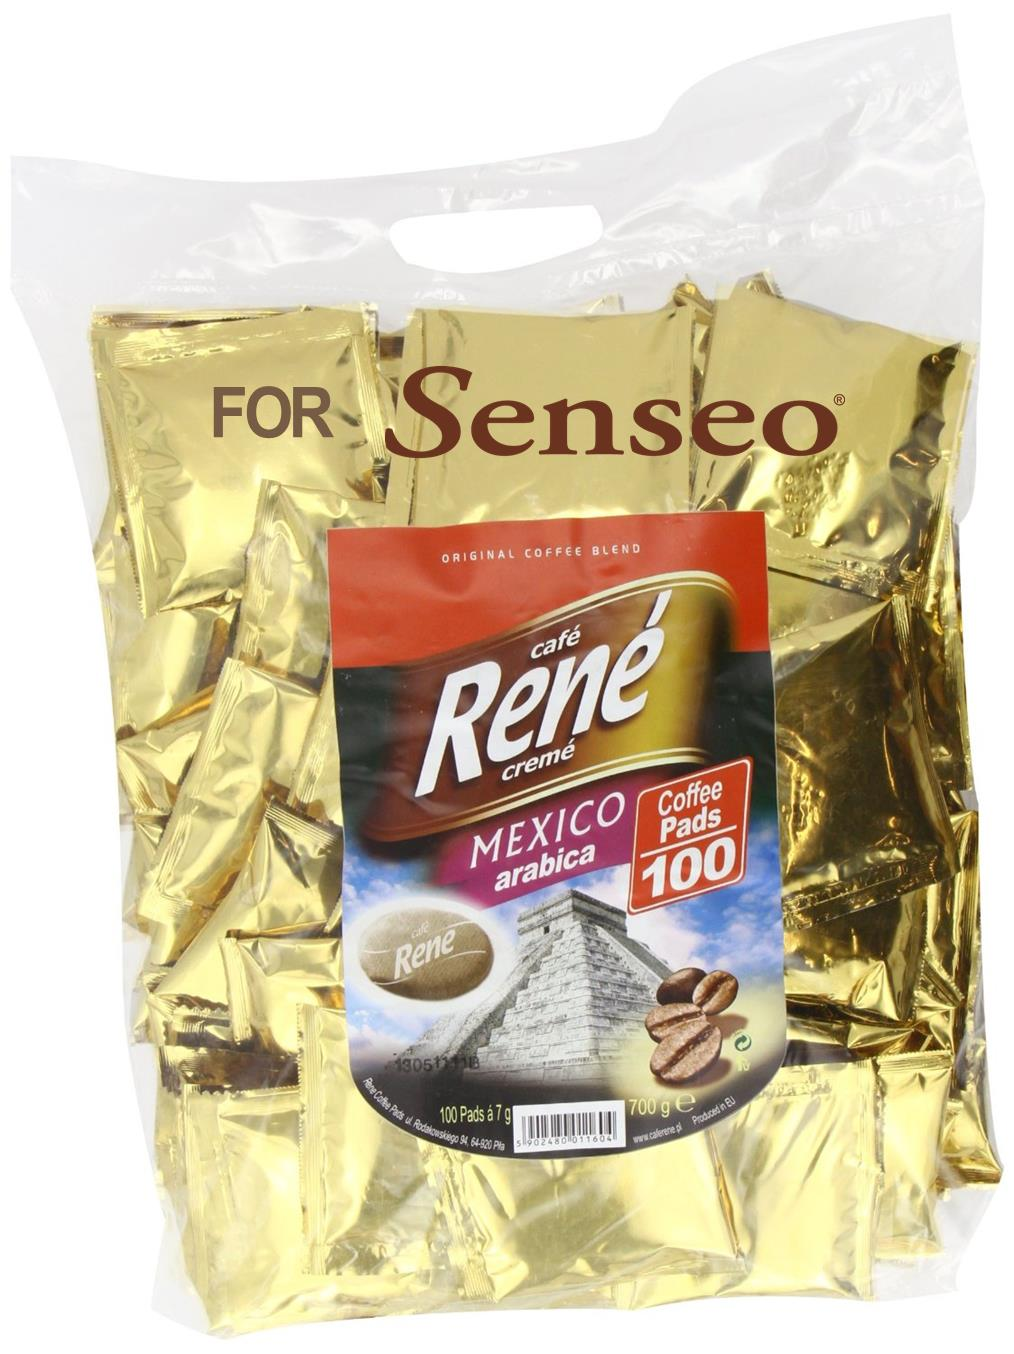 philips senseo 100 x caf rene cr me mexico coffee pads. Black Bedroom Furniture Sets. Home Design Ideas